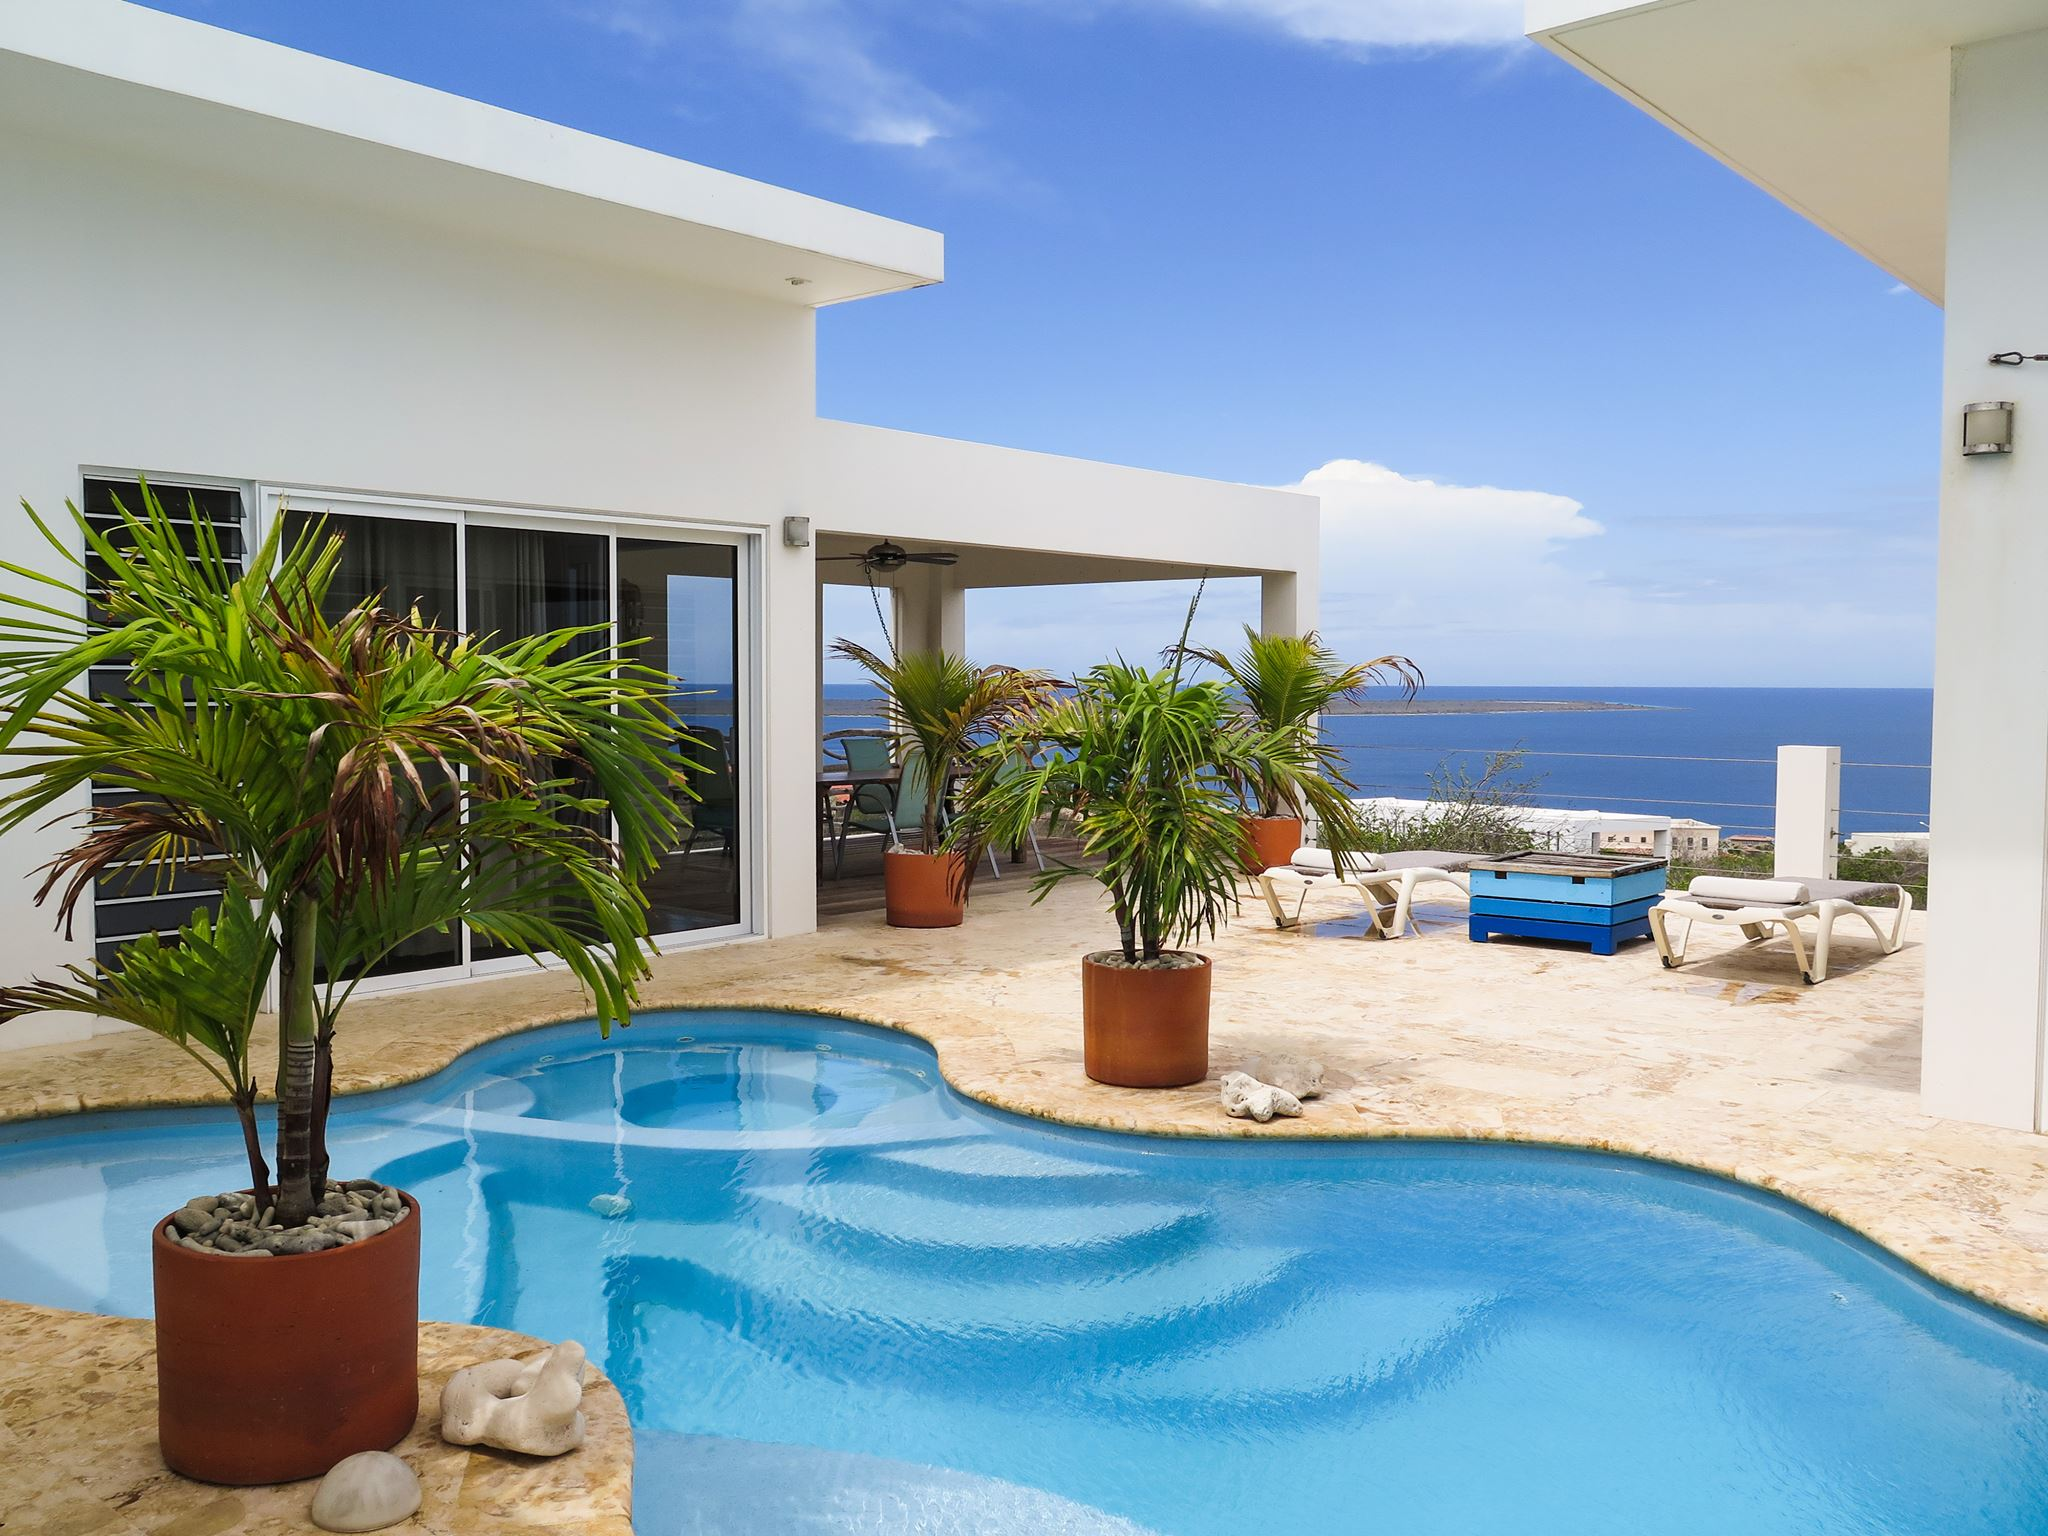 Sweeping views from the pool and terrace